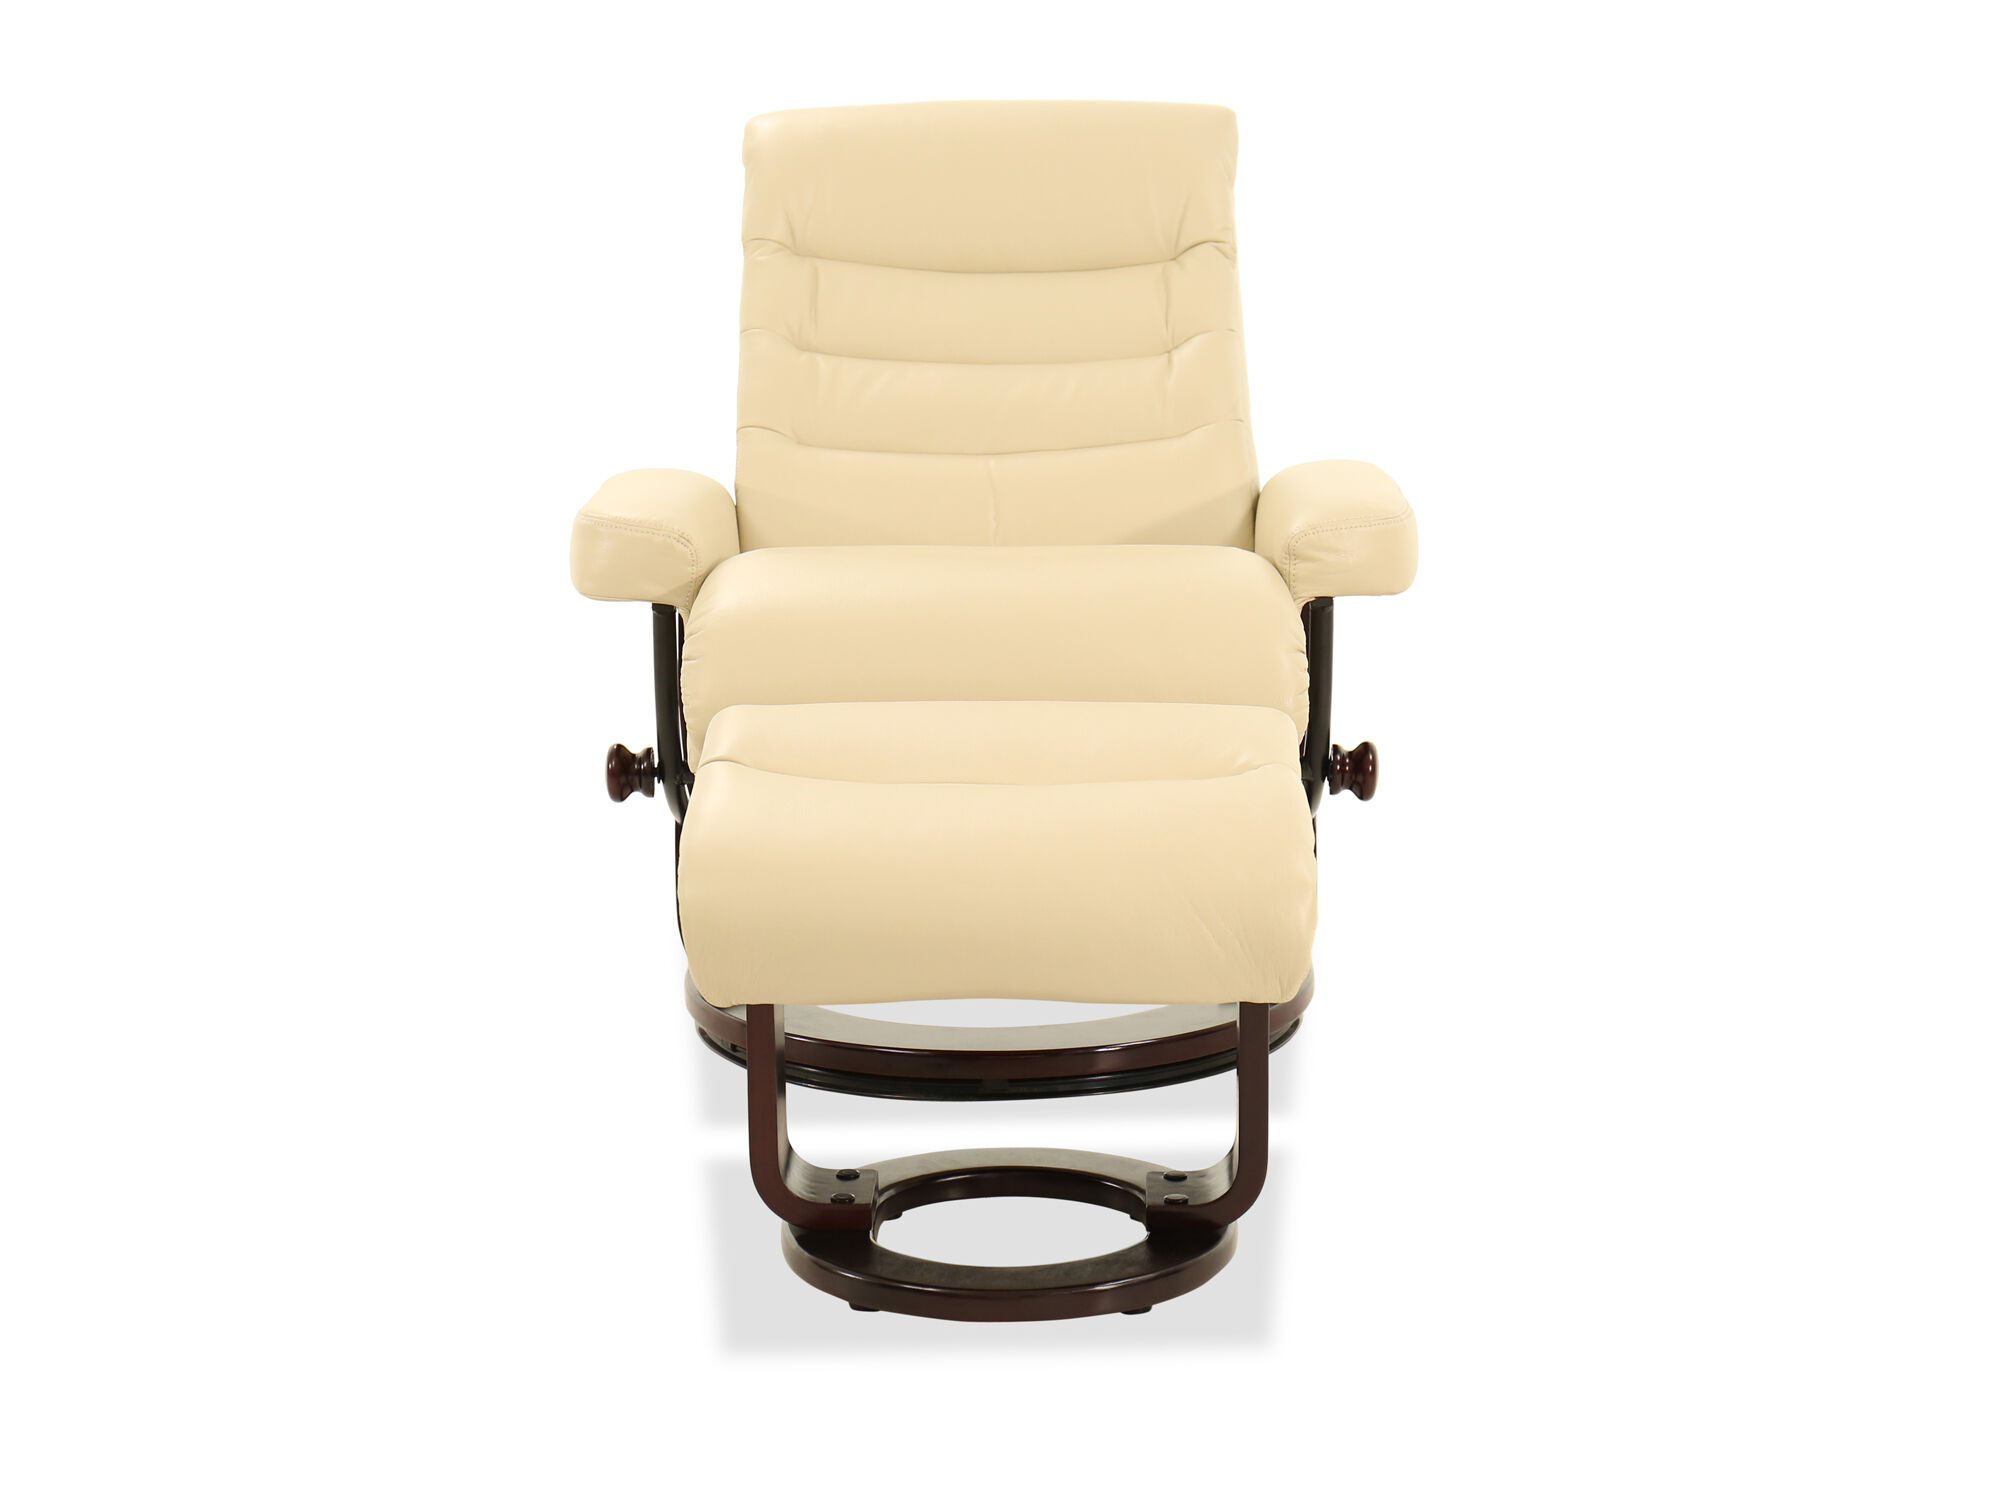 Quilted Leather Reclining Chair And Ottoman In Cream